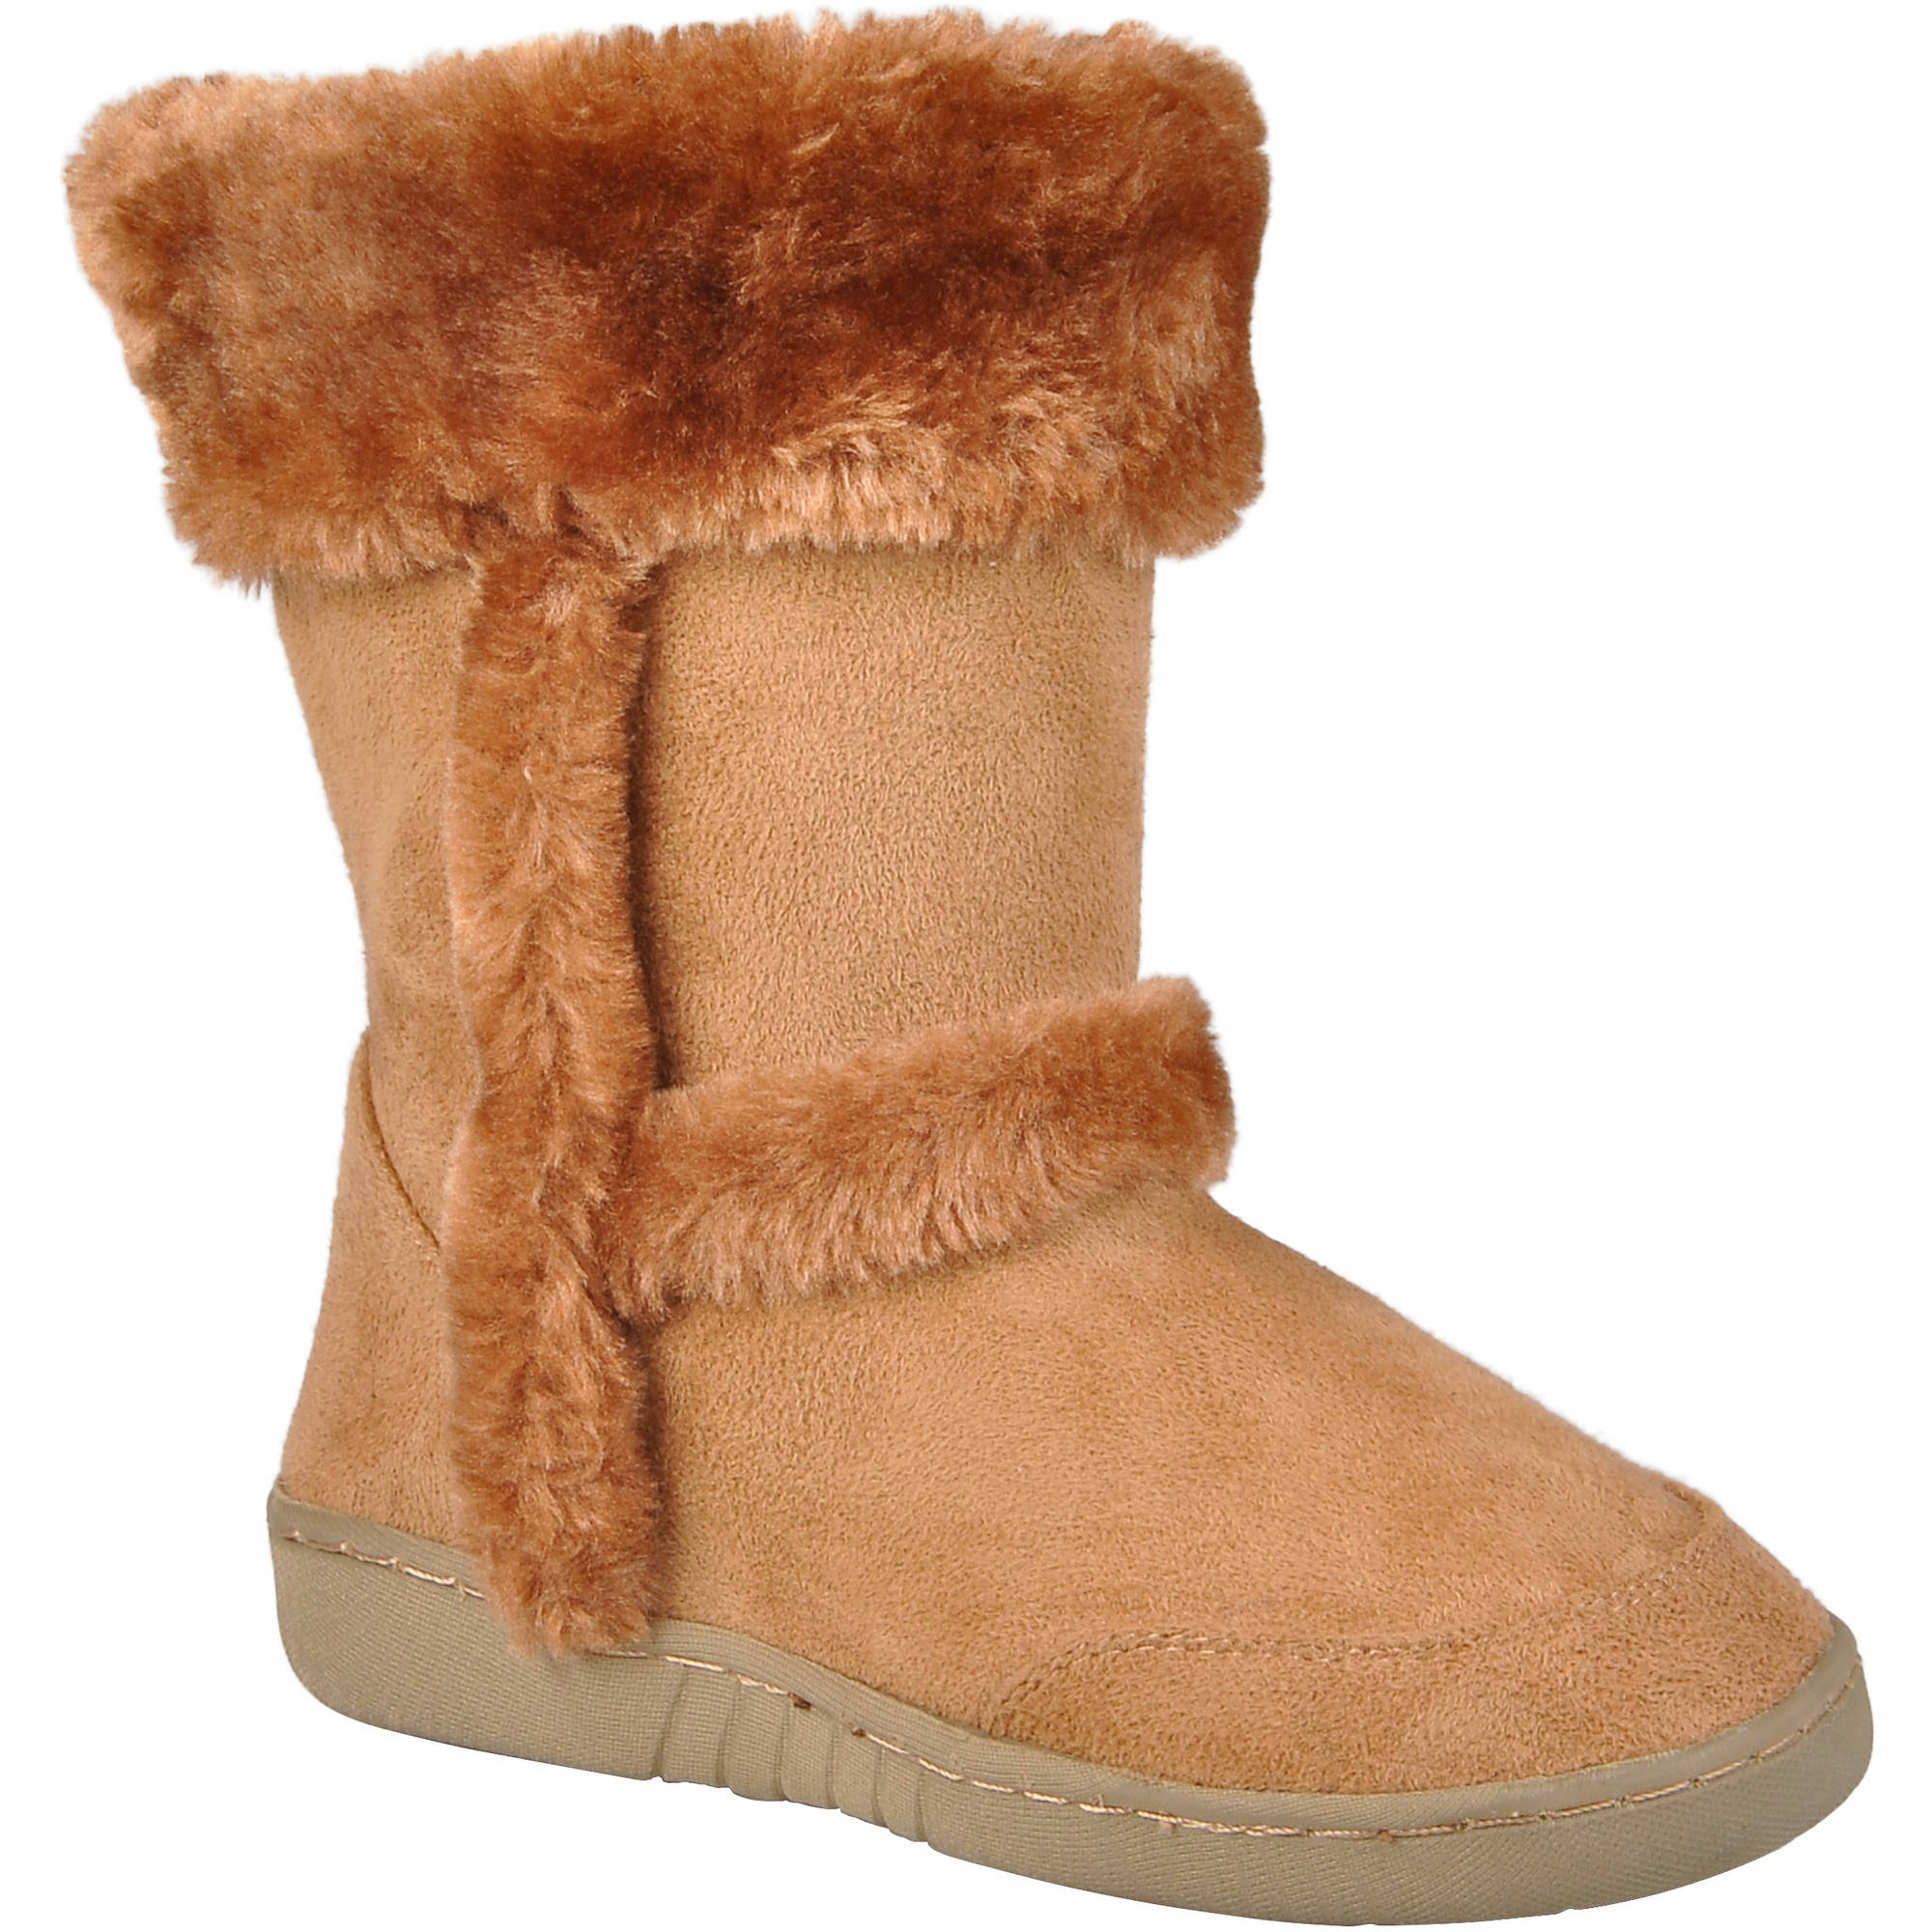 Brinley Co. Girls' Faux Fur Trim Boots